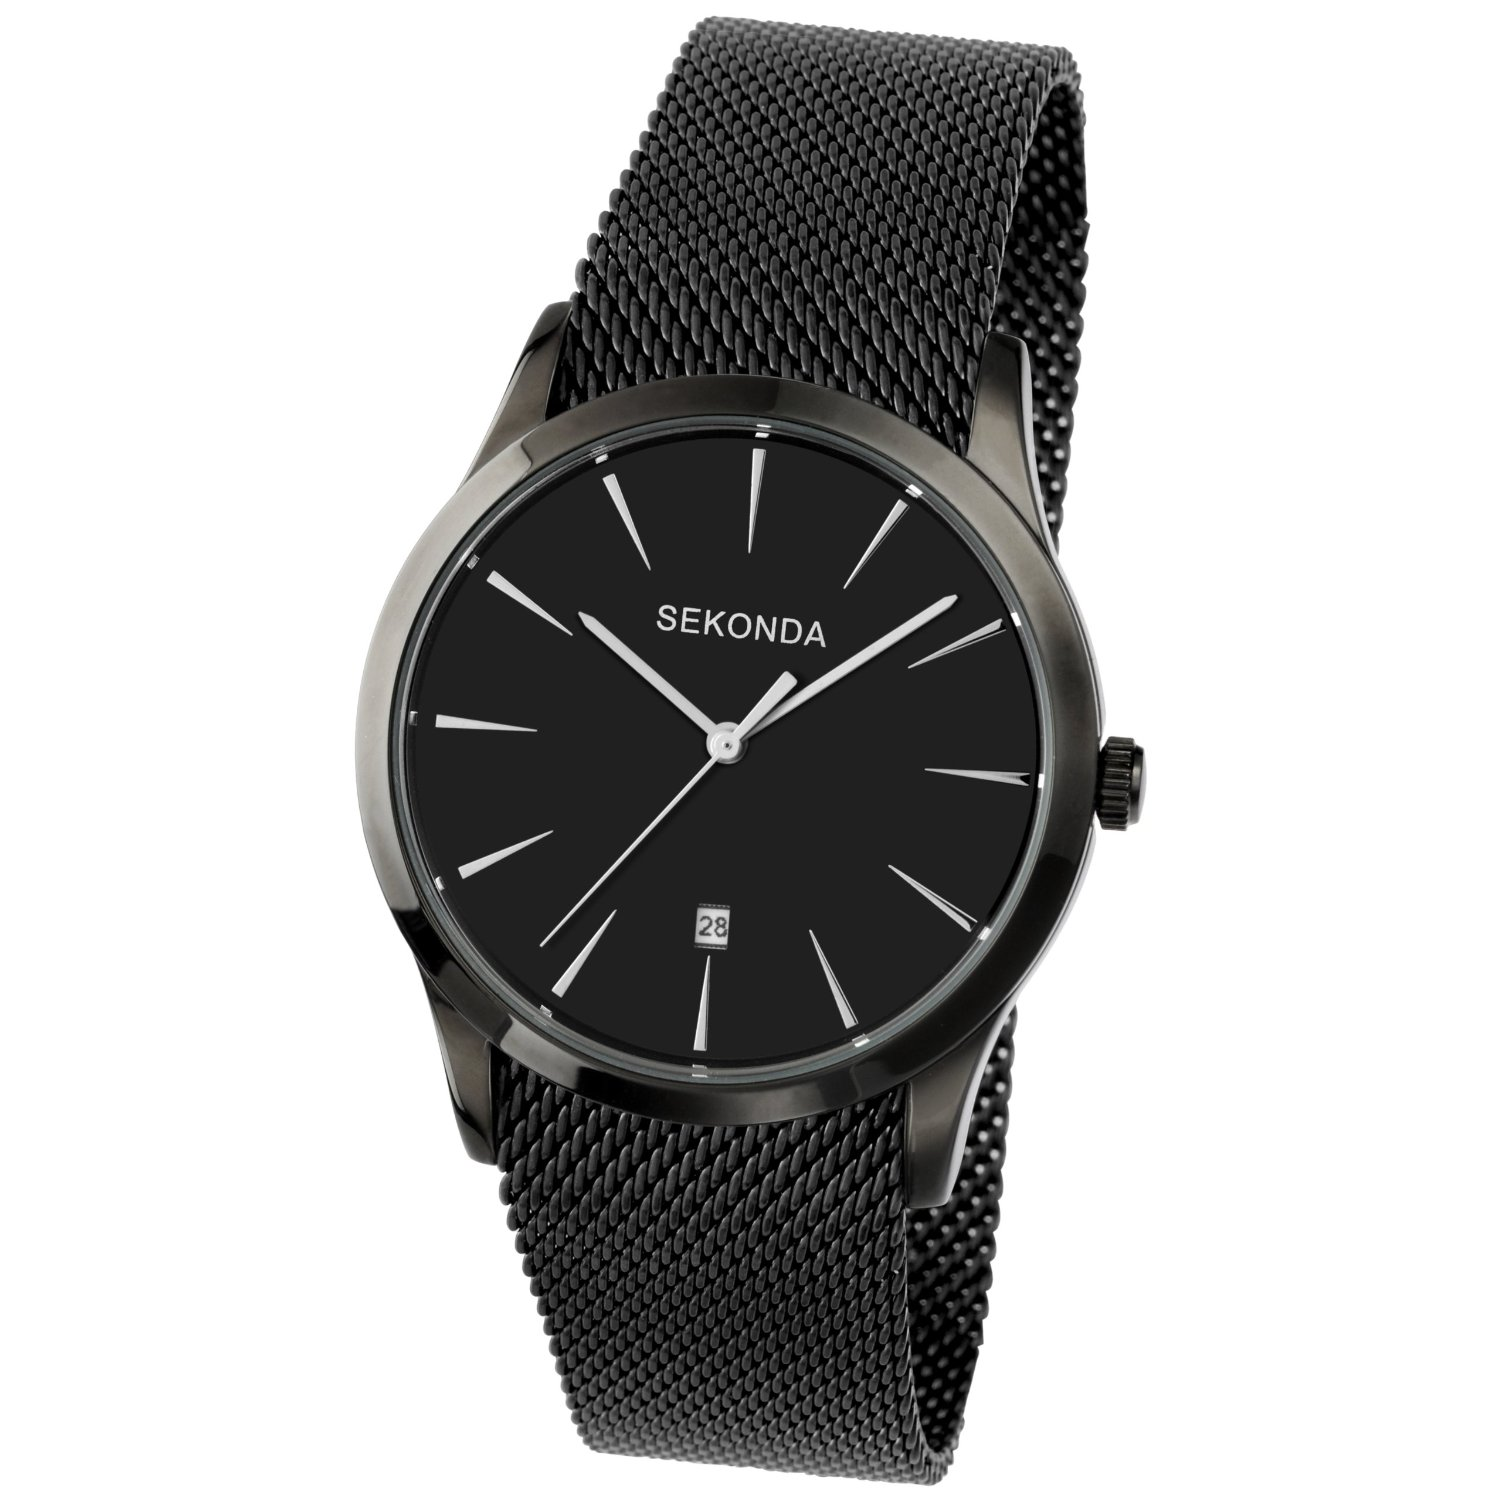 Sekonda gents bracelet watch 3388 from timewatchshop free delivery in the uk for Sekonda watches